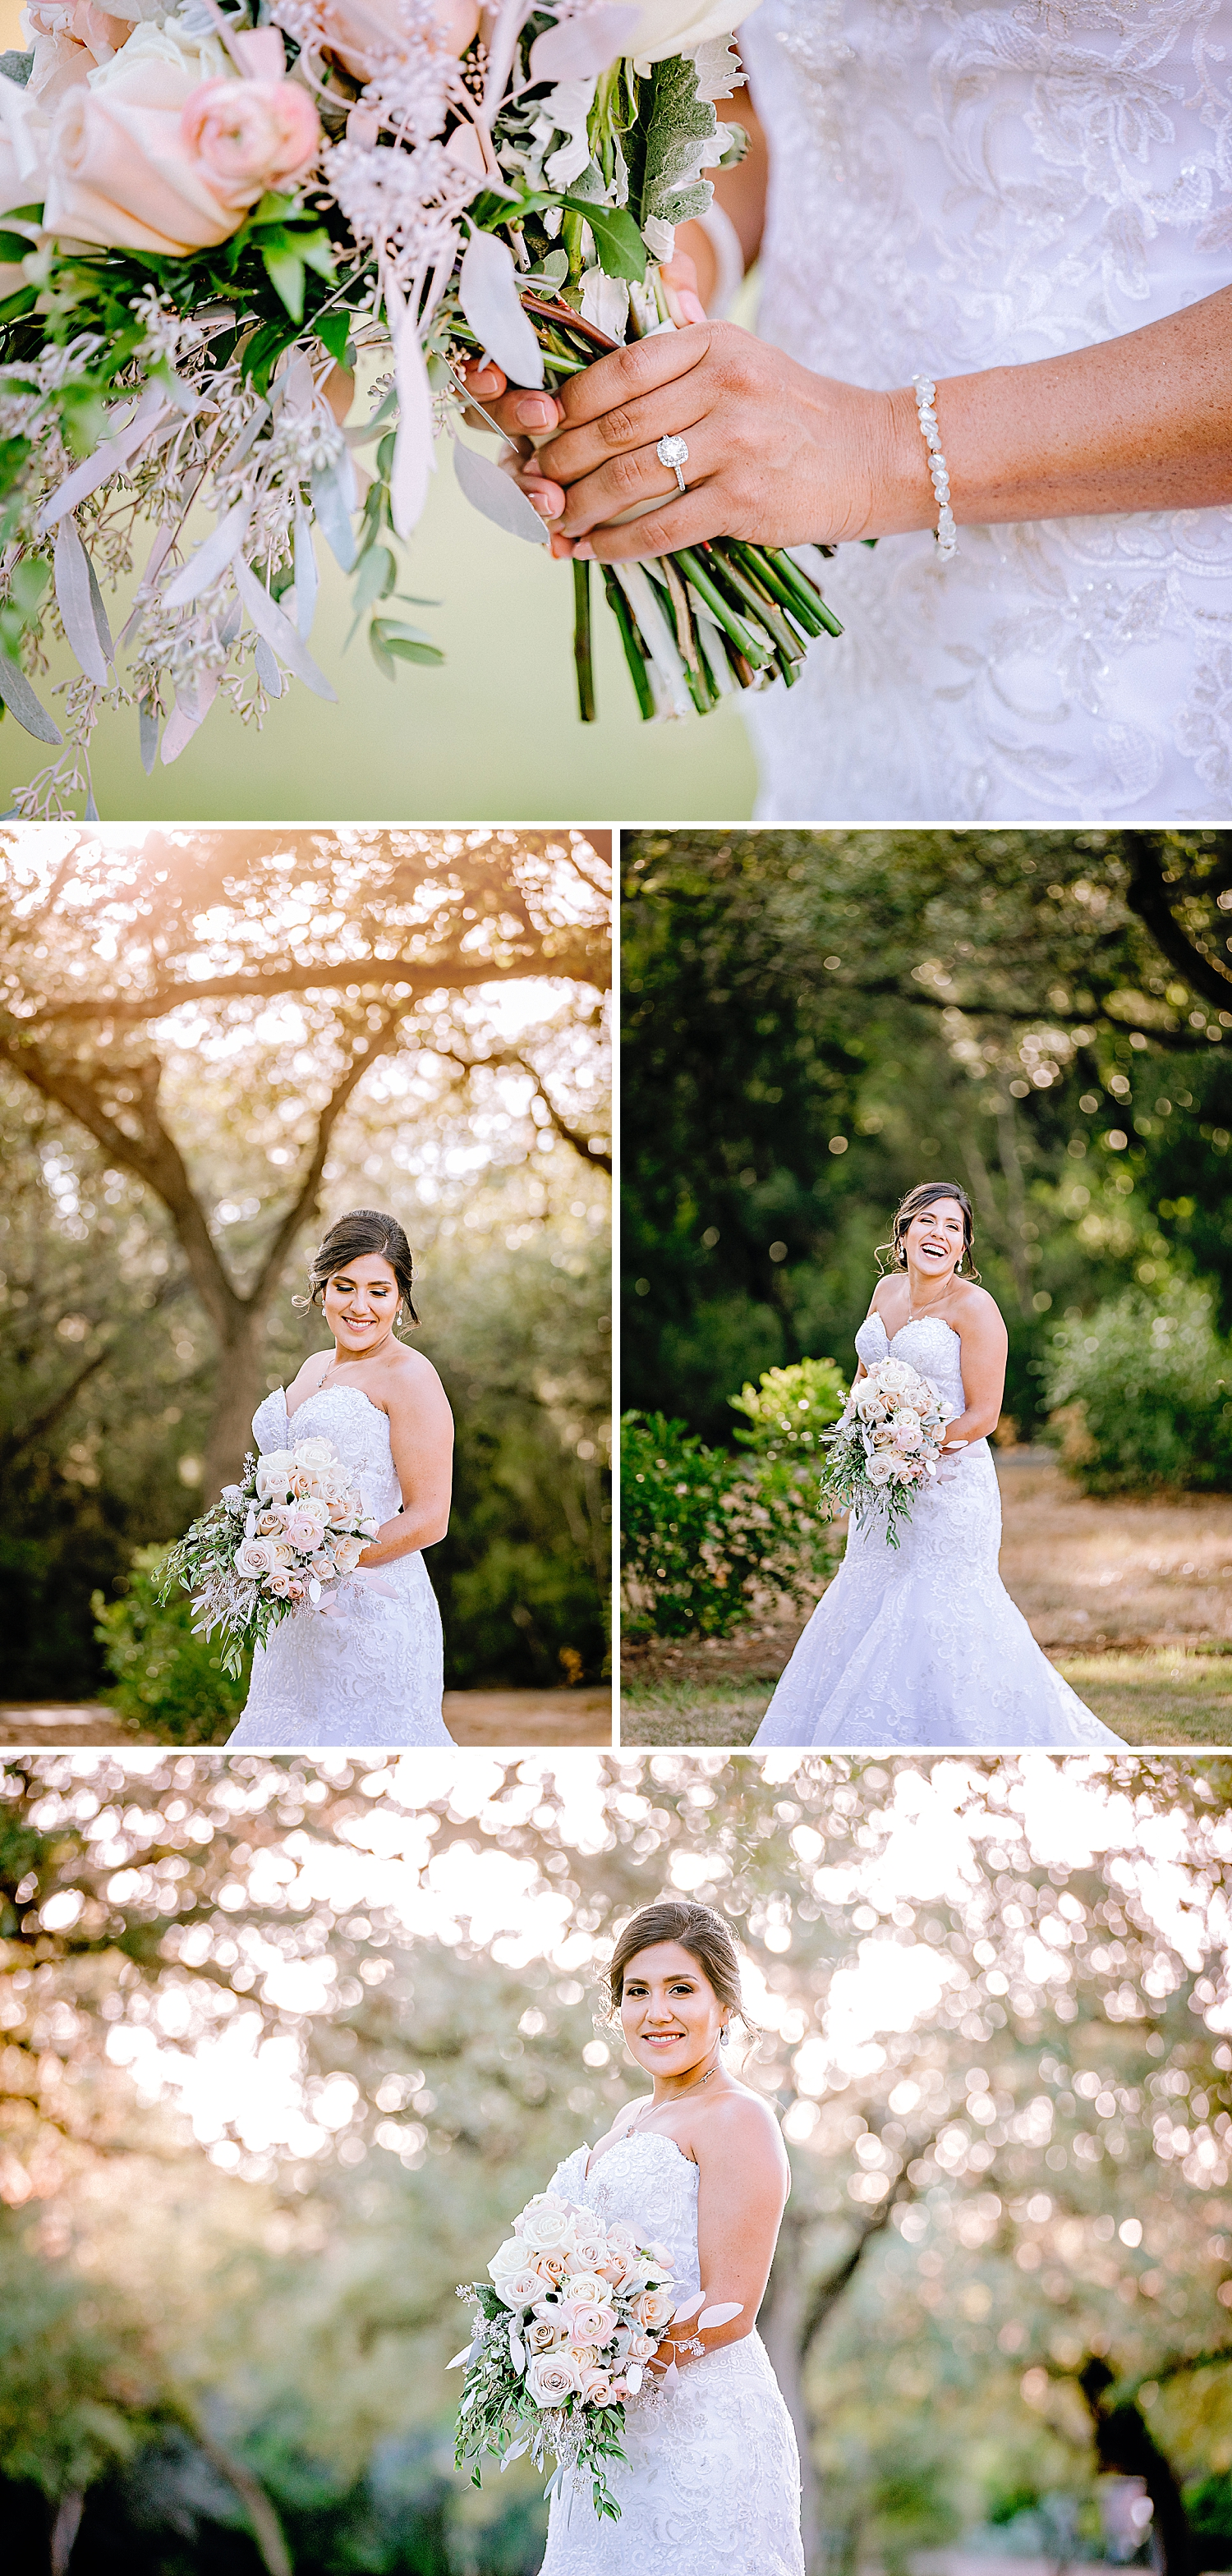 Carly-Barton-Photography-Bridal-Photos-Chadelier-of-Gruene-New-Braunfels-Wedding-Photographer_0017.jpg